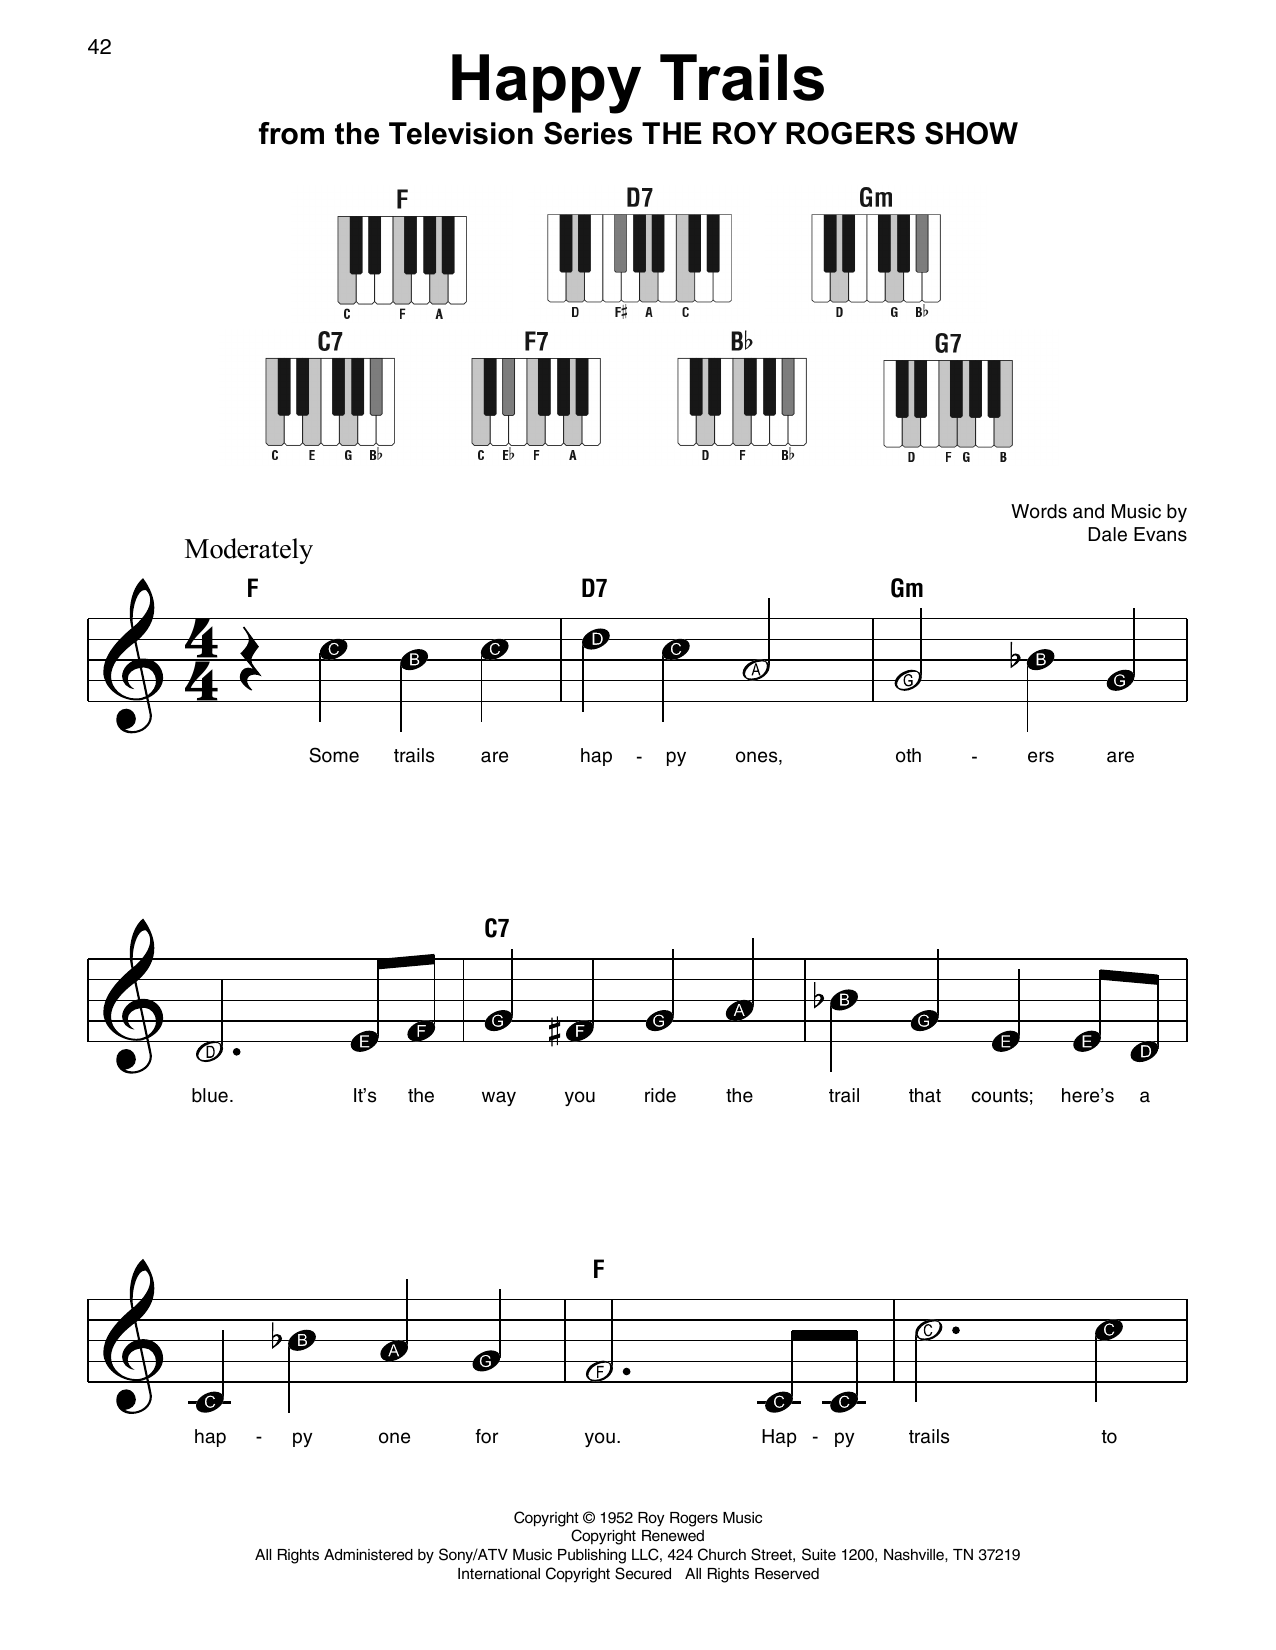 Roy rogers happy trails sheet music at stantons sheet music format easy piano hexwebz Choice Image